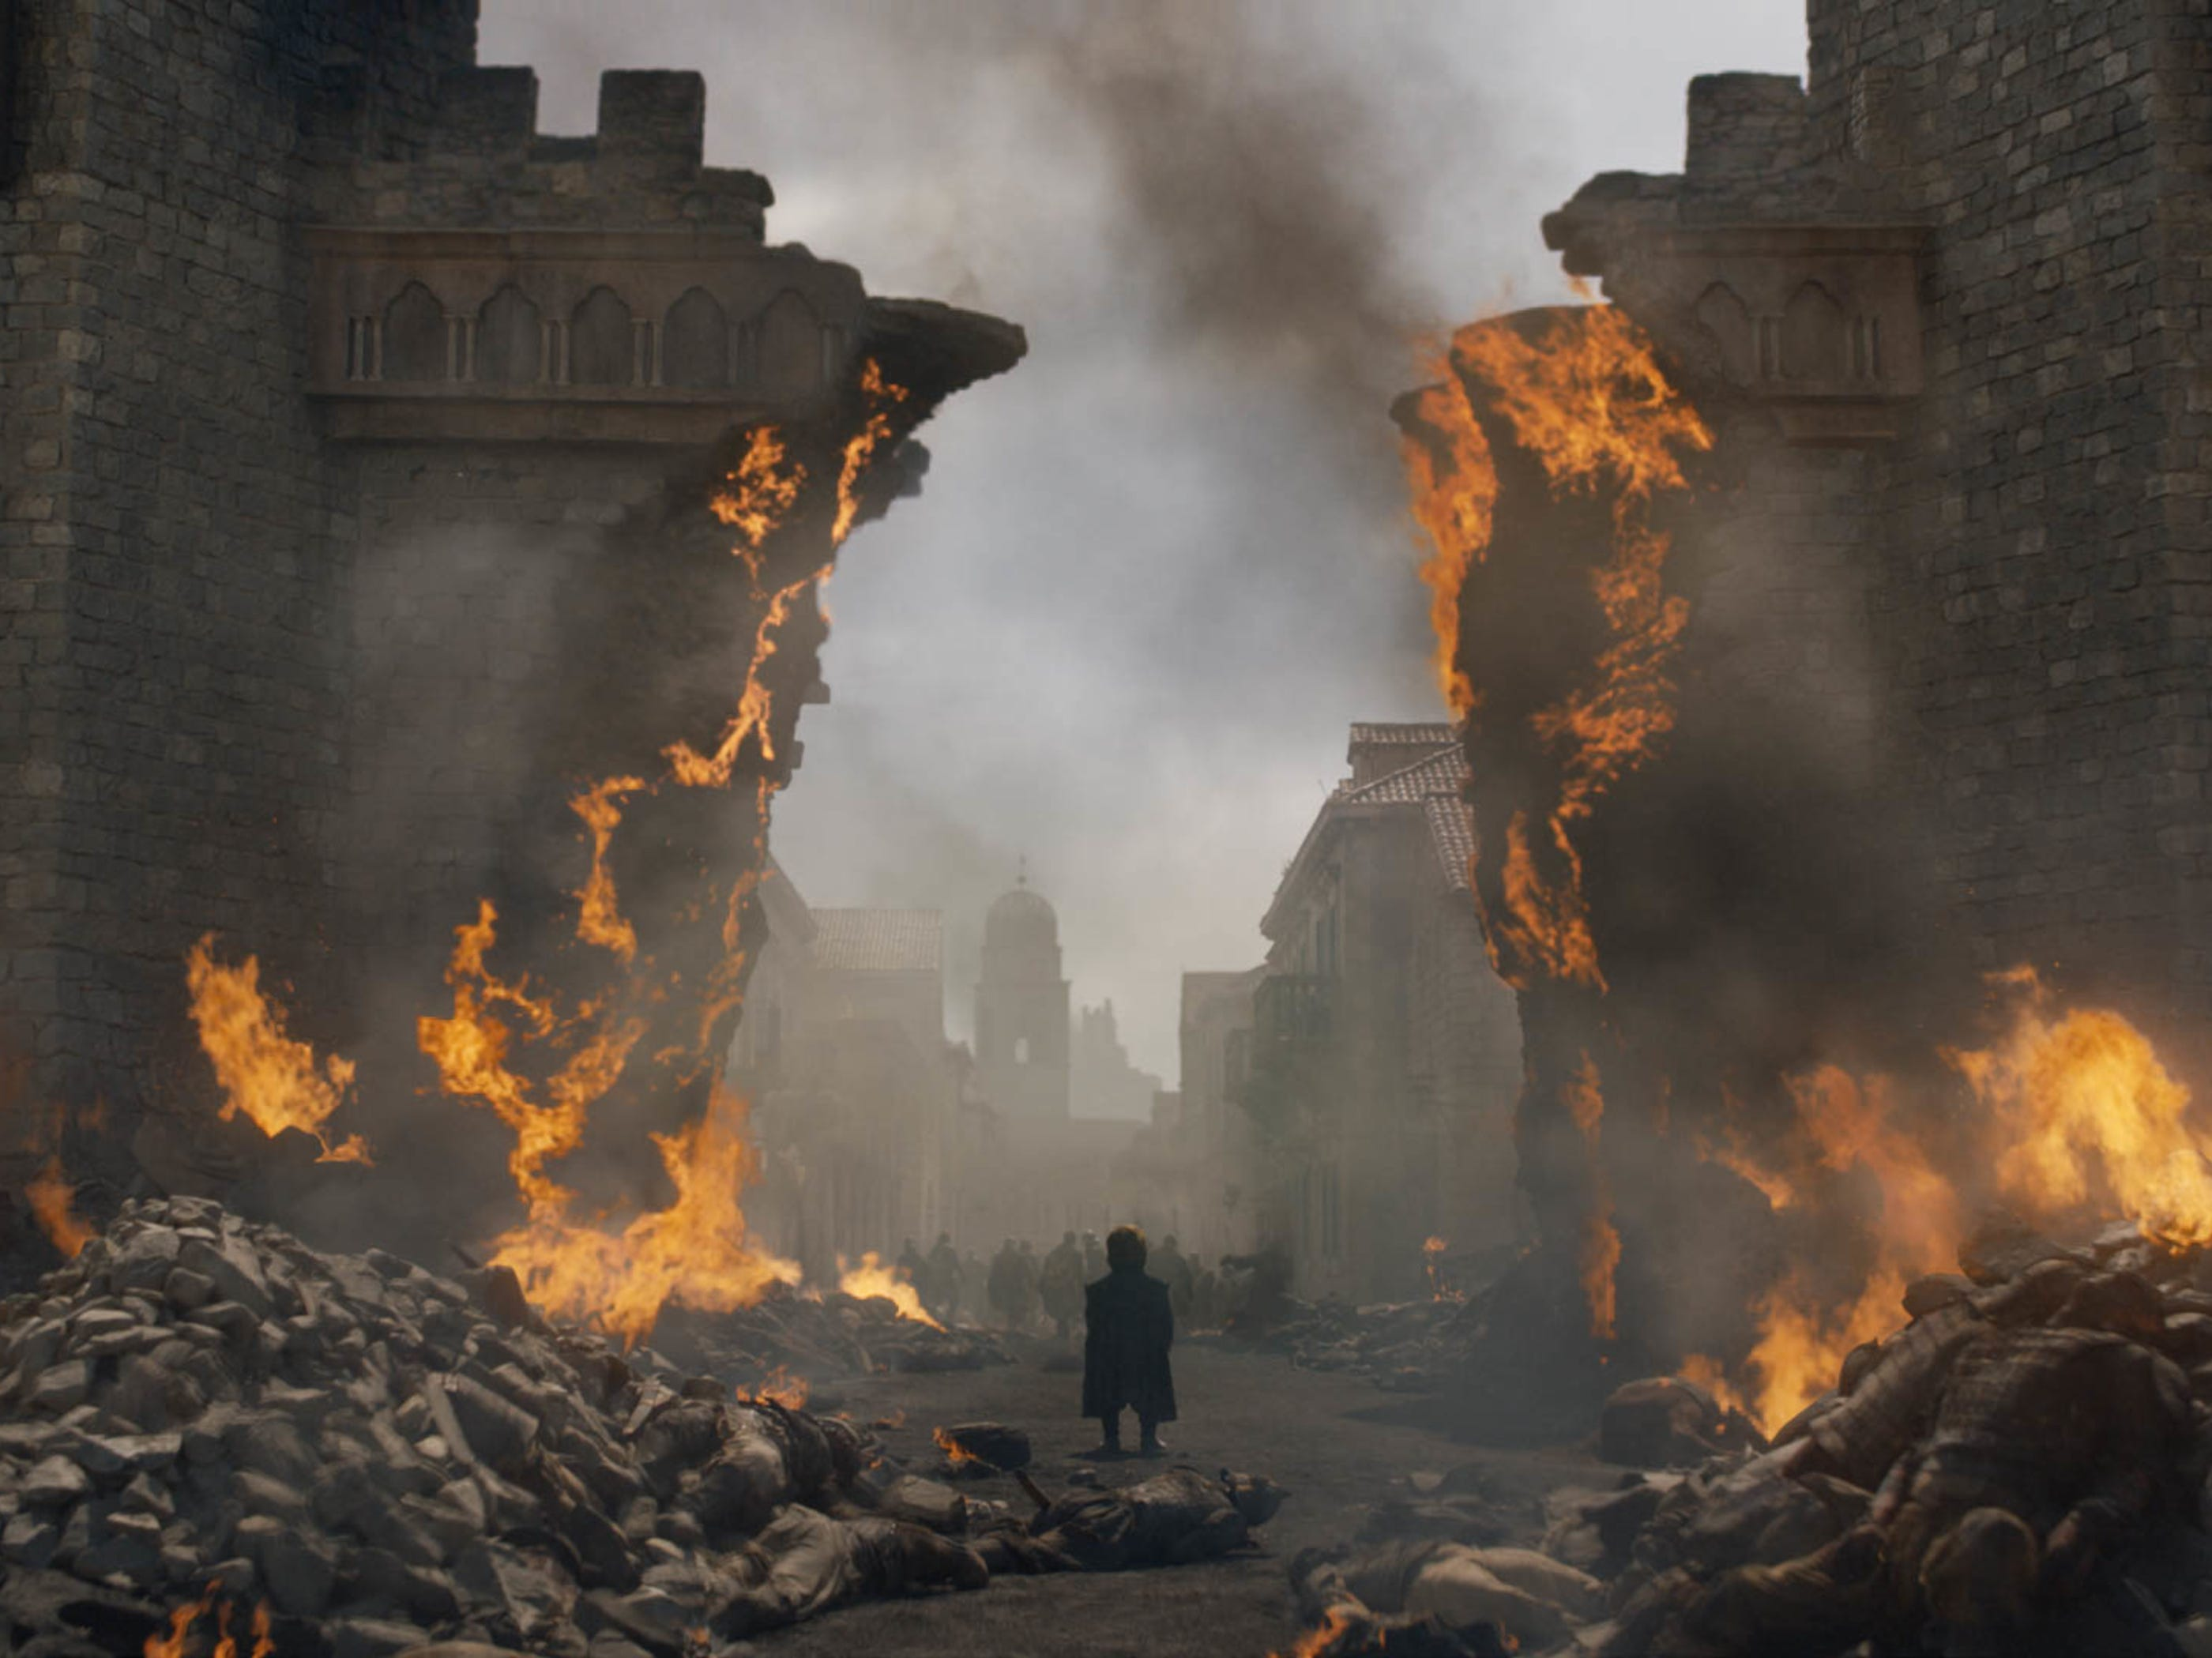 Tyrion Lannister (Peter Dinklage) stands amid the burning ruins of King's Landing.